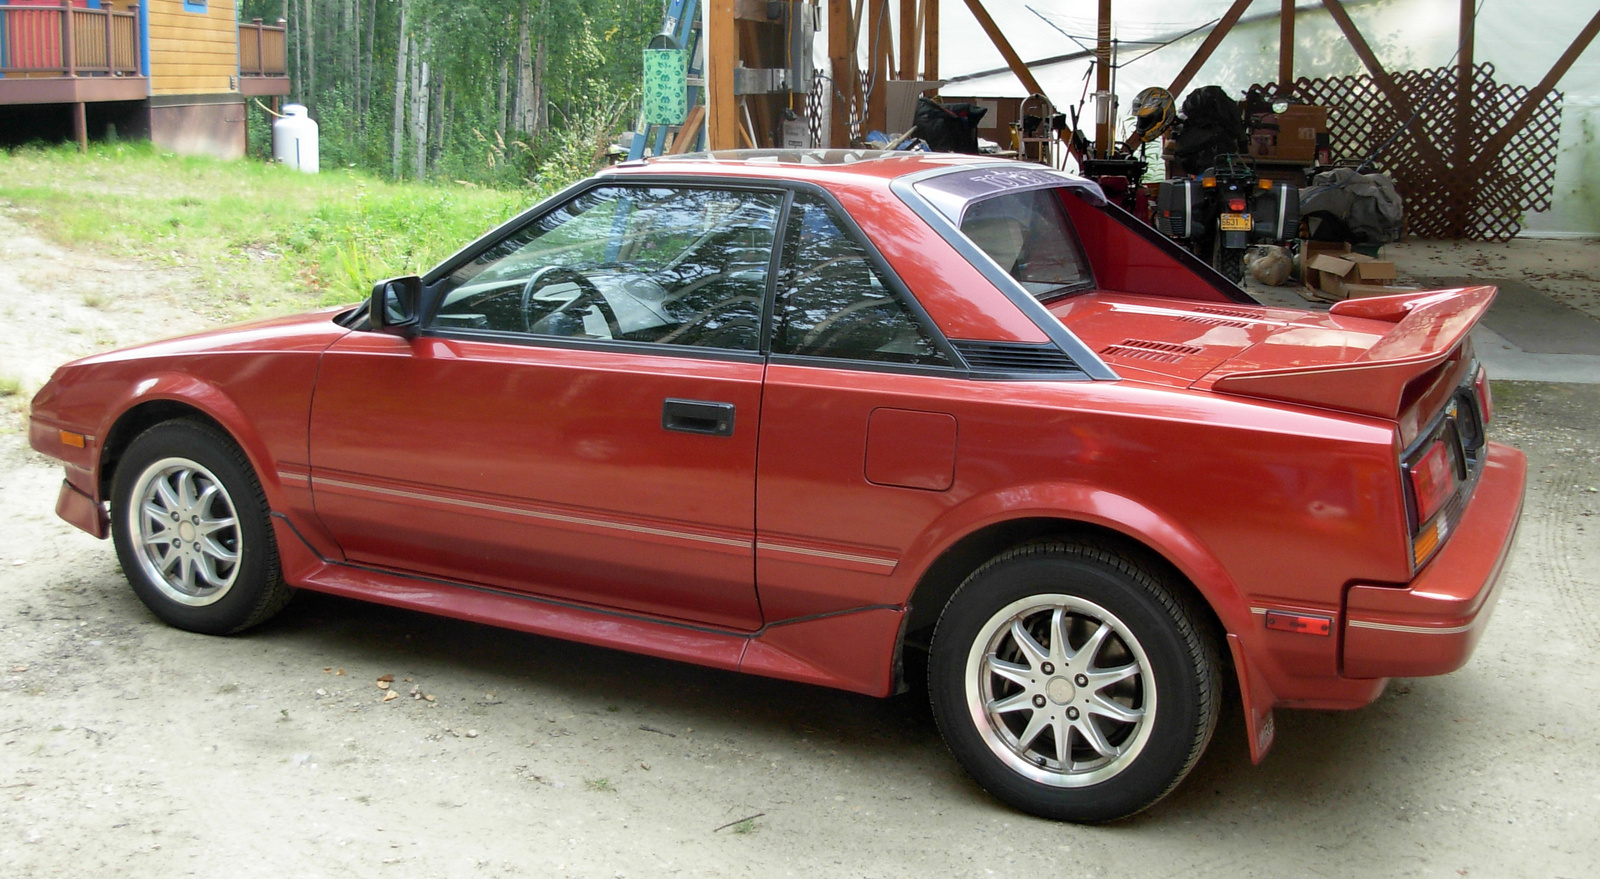 Whats A Very Mass Produced Car From The 80s And 90s You Just Don Chevy Wiring Diagram 1988 Dach Thesehttp Staticcarguruscom Images Site 2012 08 18 21 49 Toyota Mr2 Pic 2738866533367377677jpeg